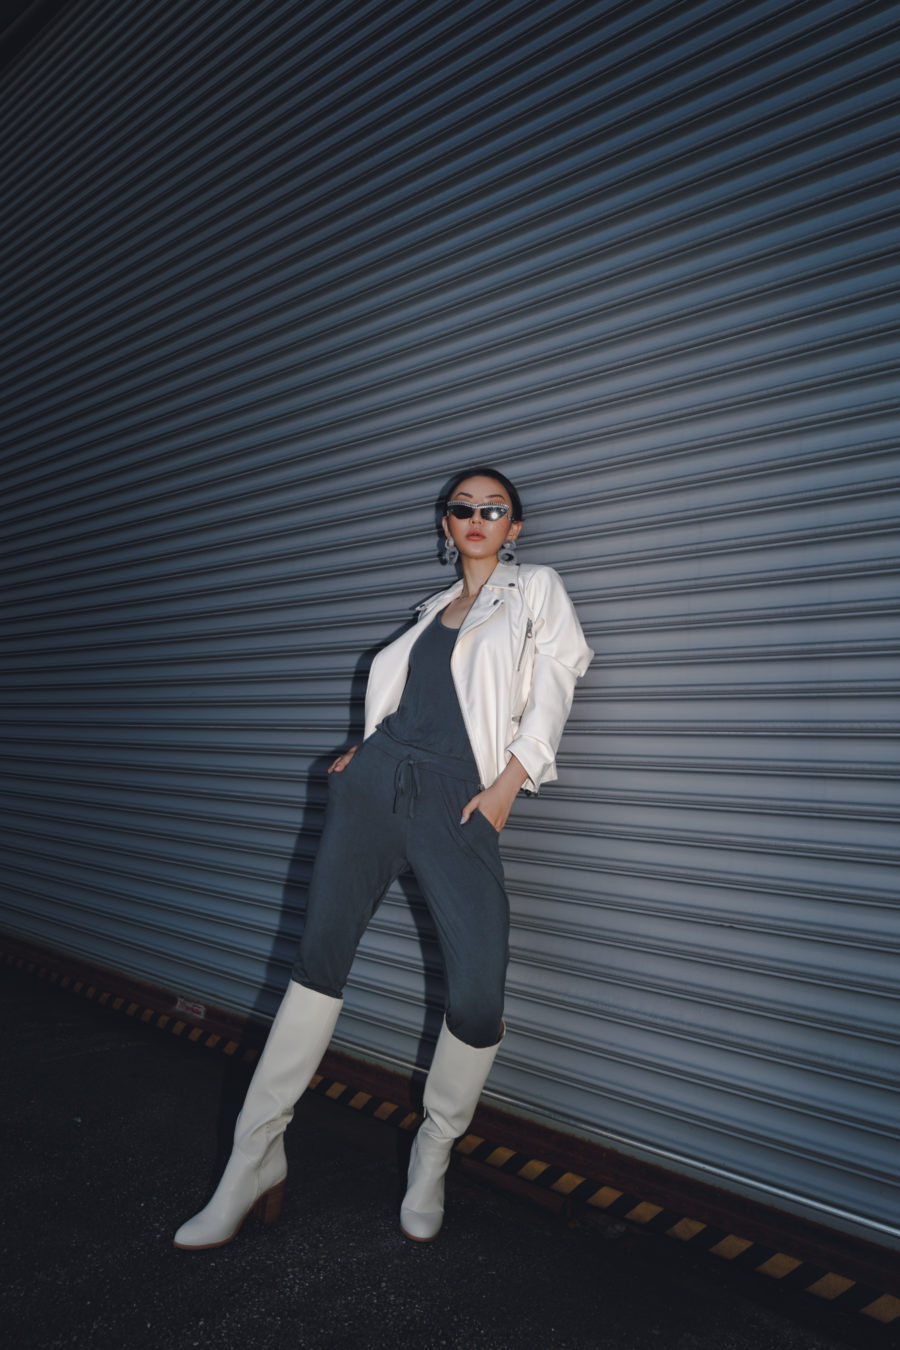 jessica wang wears white knee high boots to dress up loungewear // Jessica Wang - Notjessfashion.com